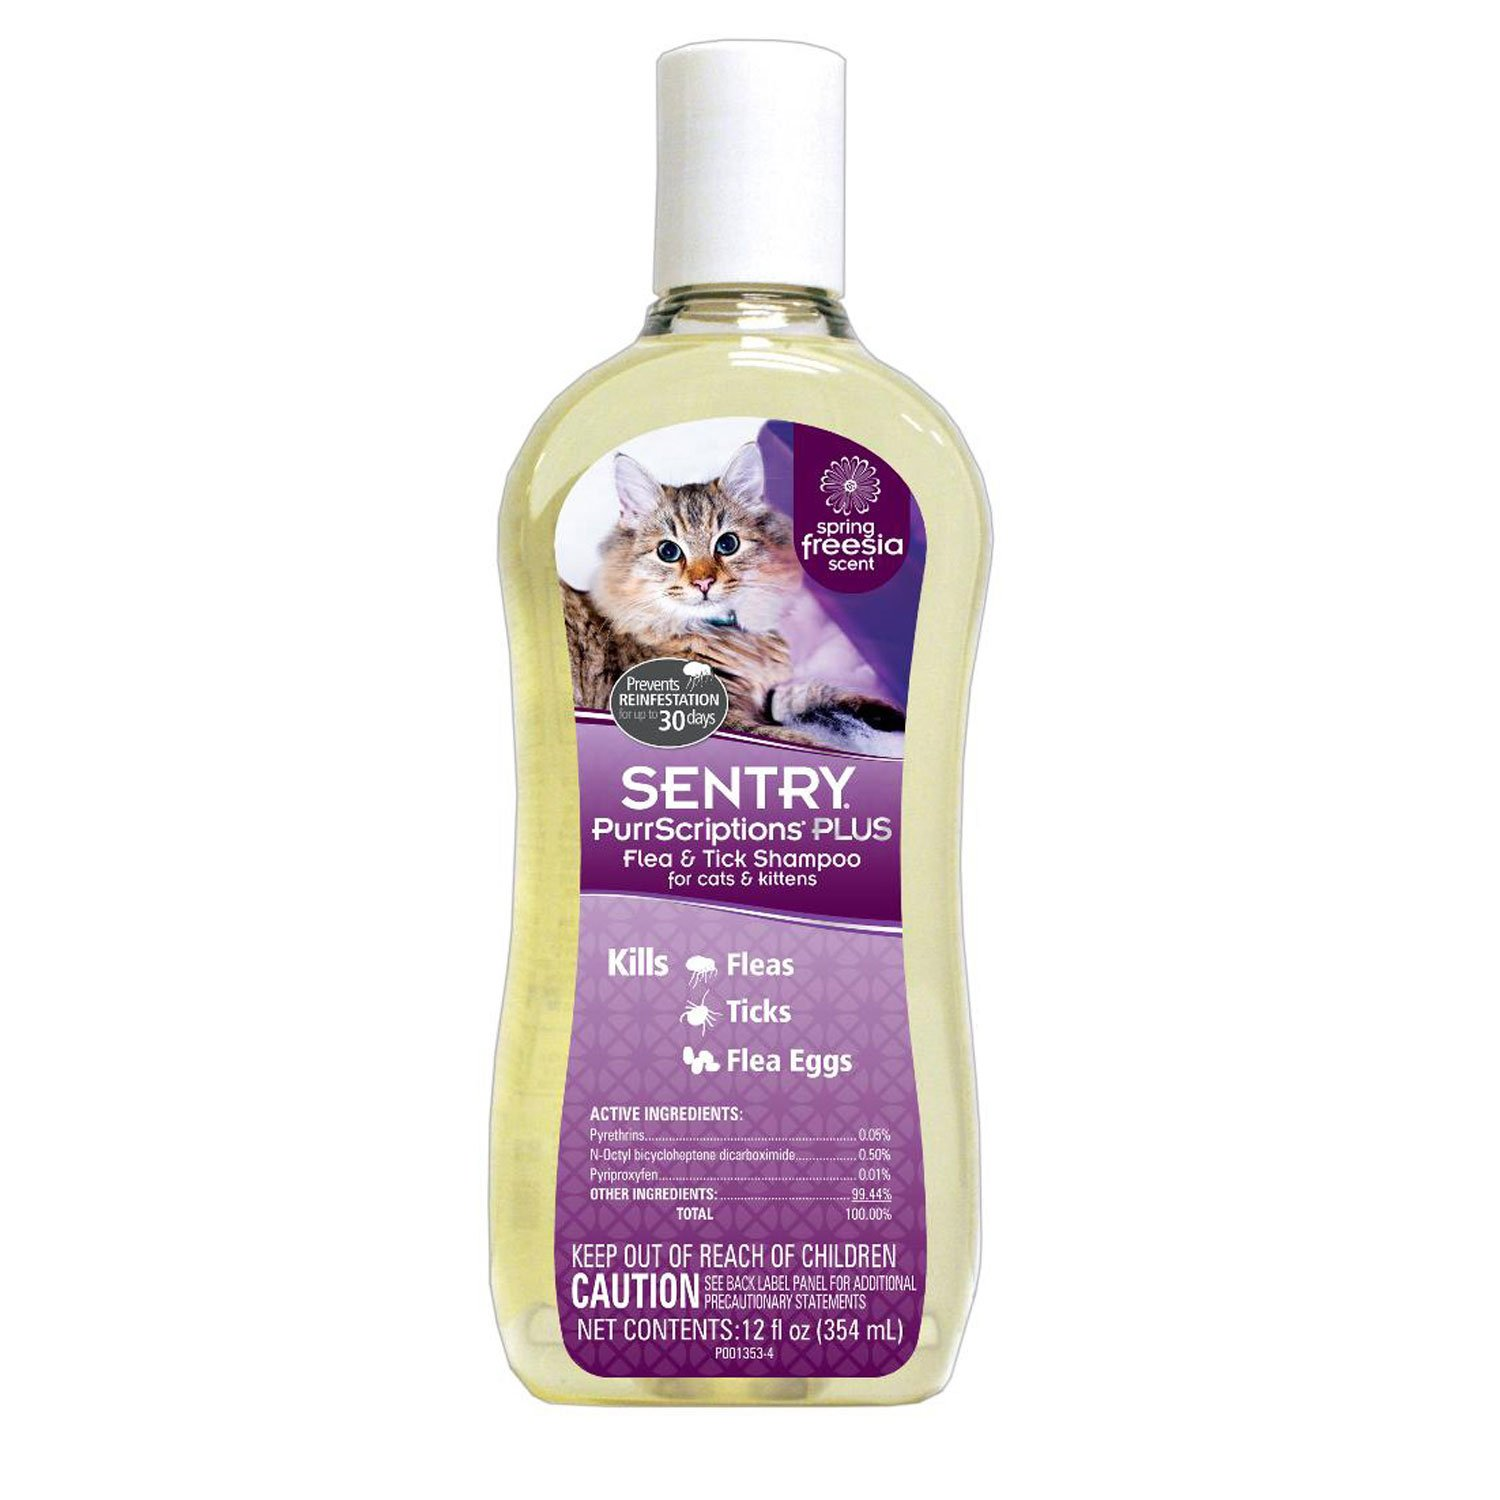 Sentry PurrScriptions Plus Flea & Tick Shampoo for Cats & Kittens